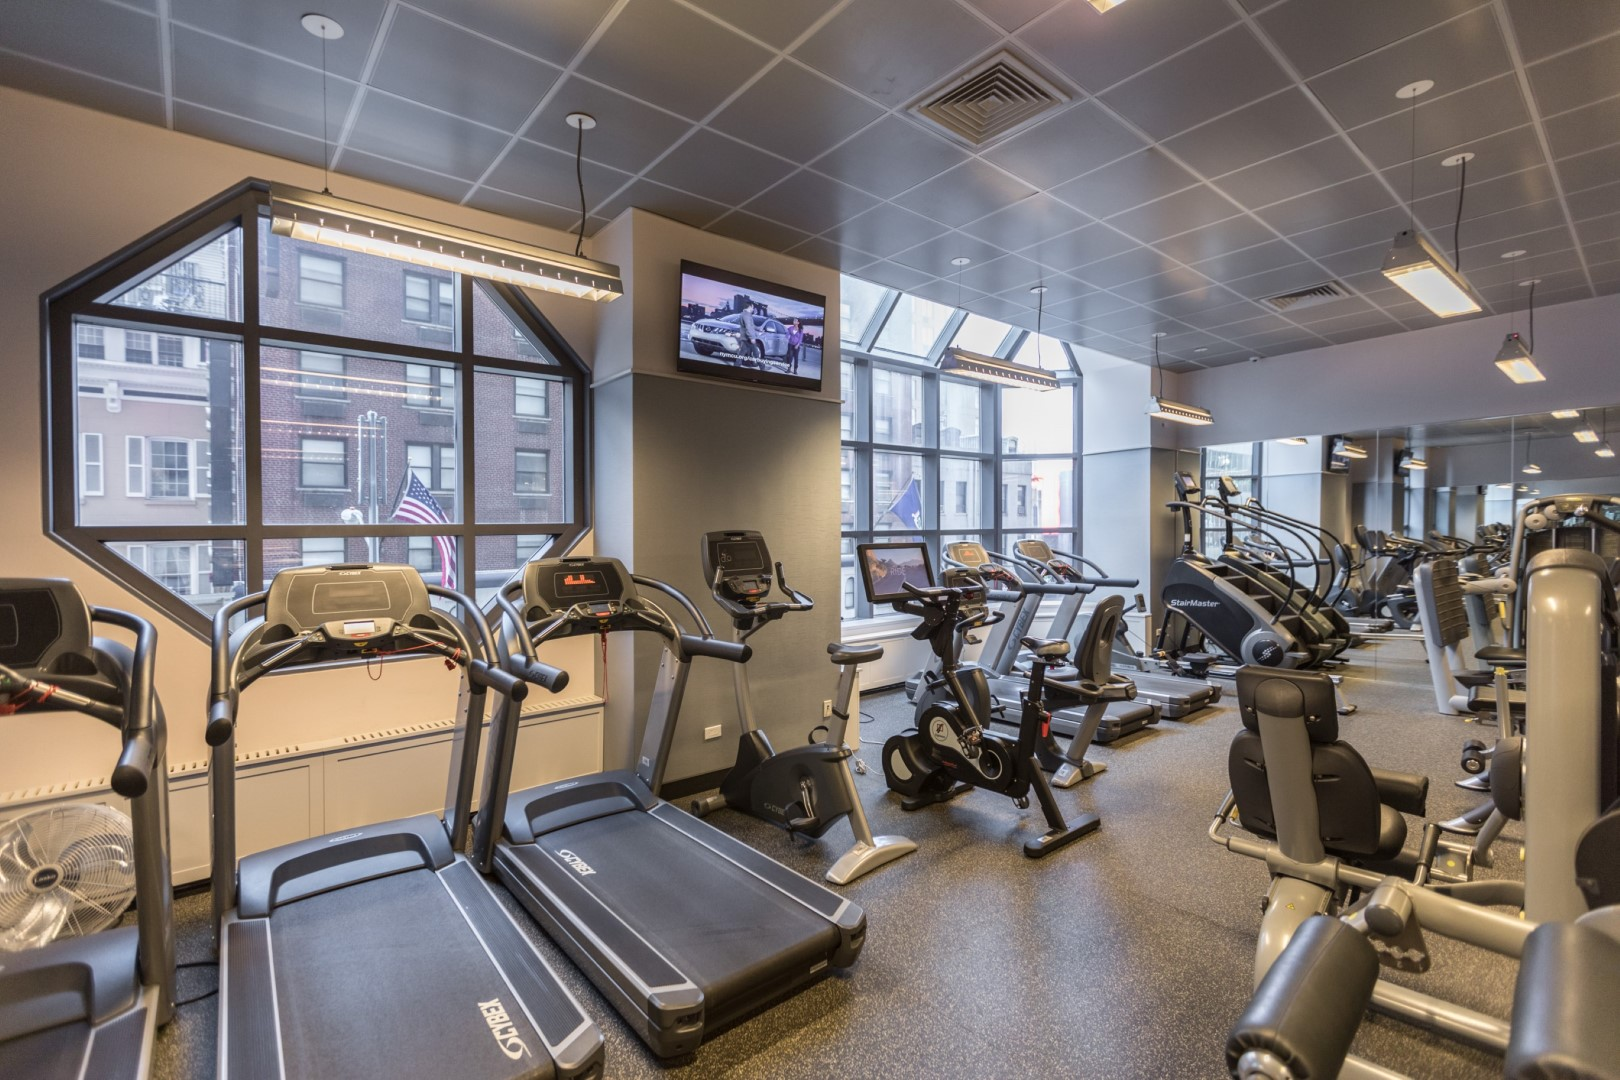 Gym at Ritz Plaza Apartments, Times Square, New York